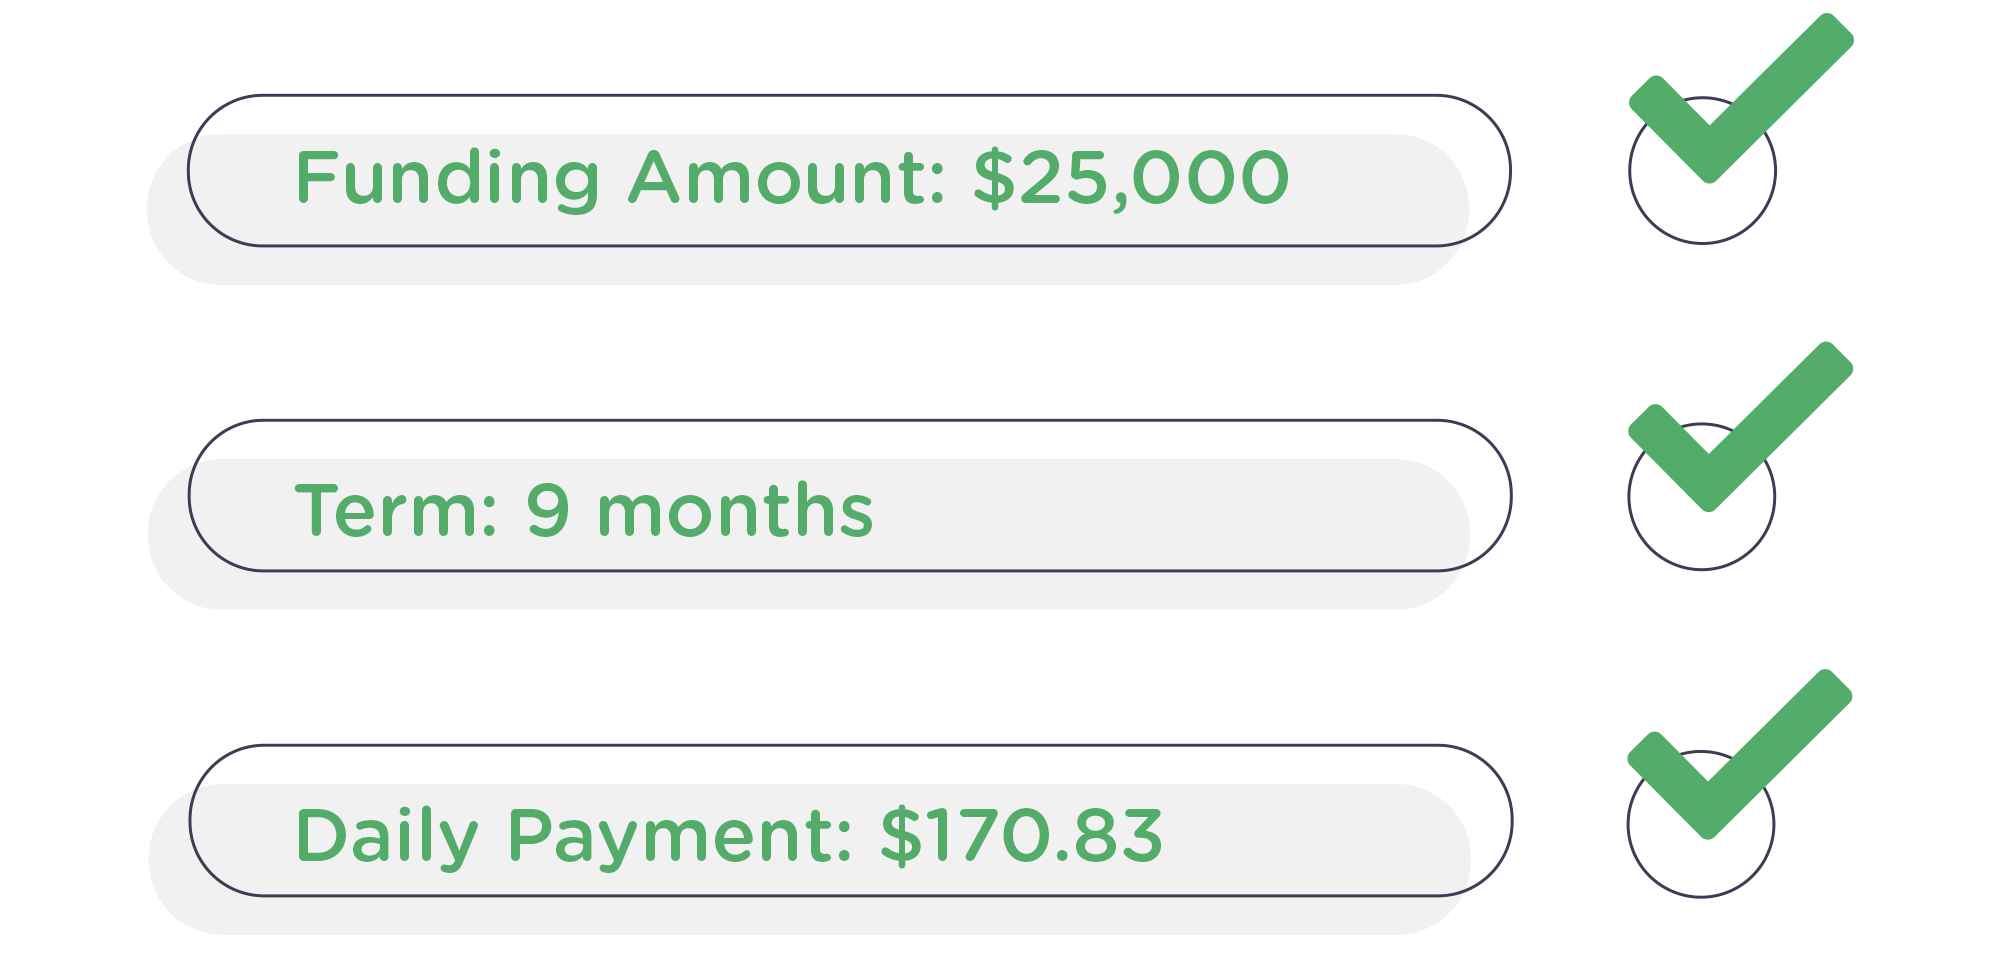 *This offer was based on a number of factors including banking balances throughout the month, revenue, time in business and other financial obligations.